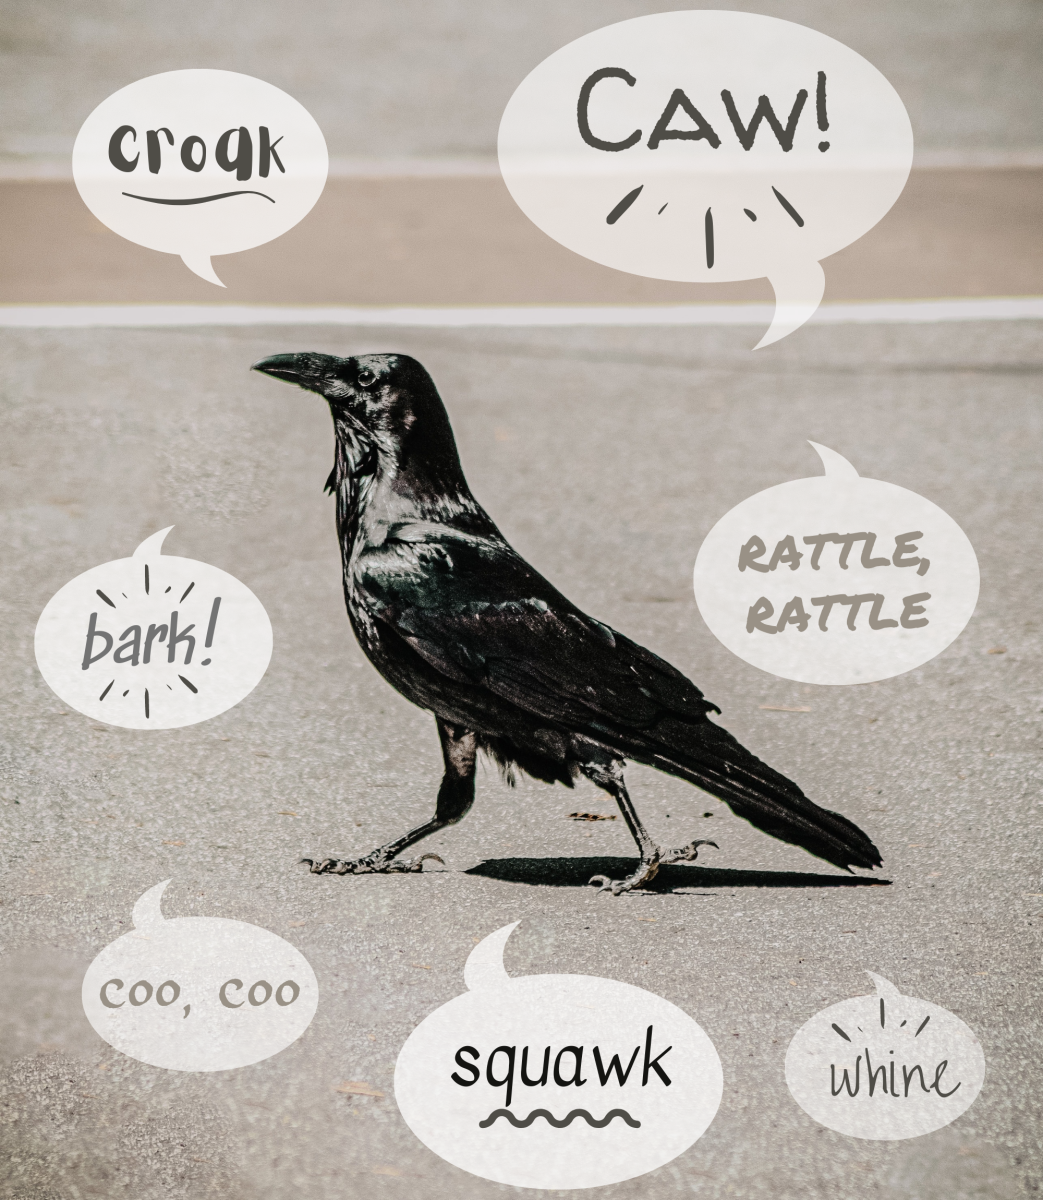 As songbirds, crows have a wide vocabulary and make many kinds of noises.